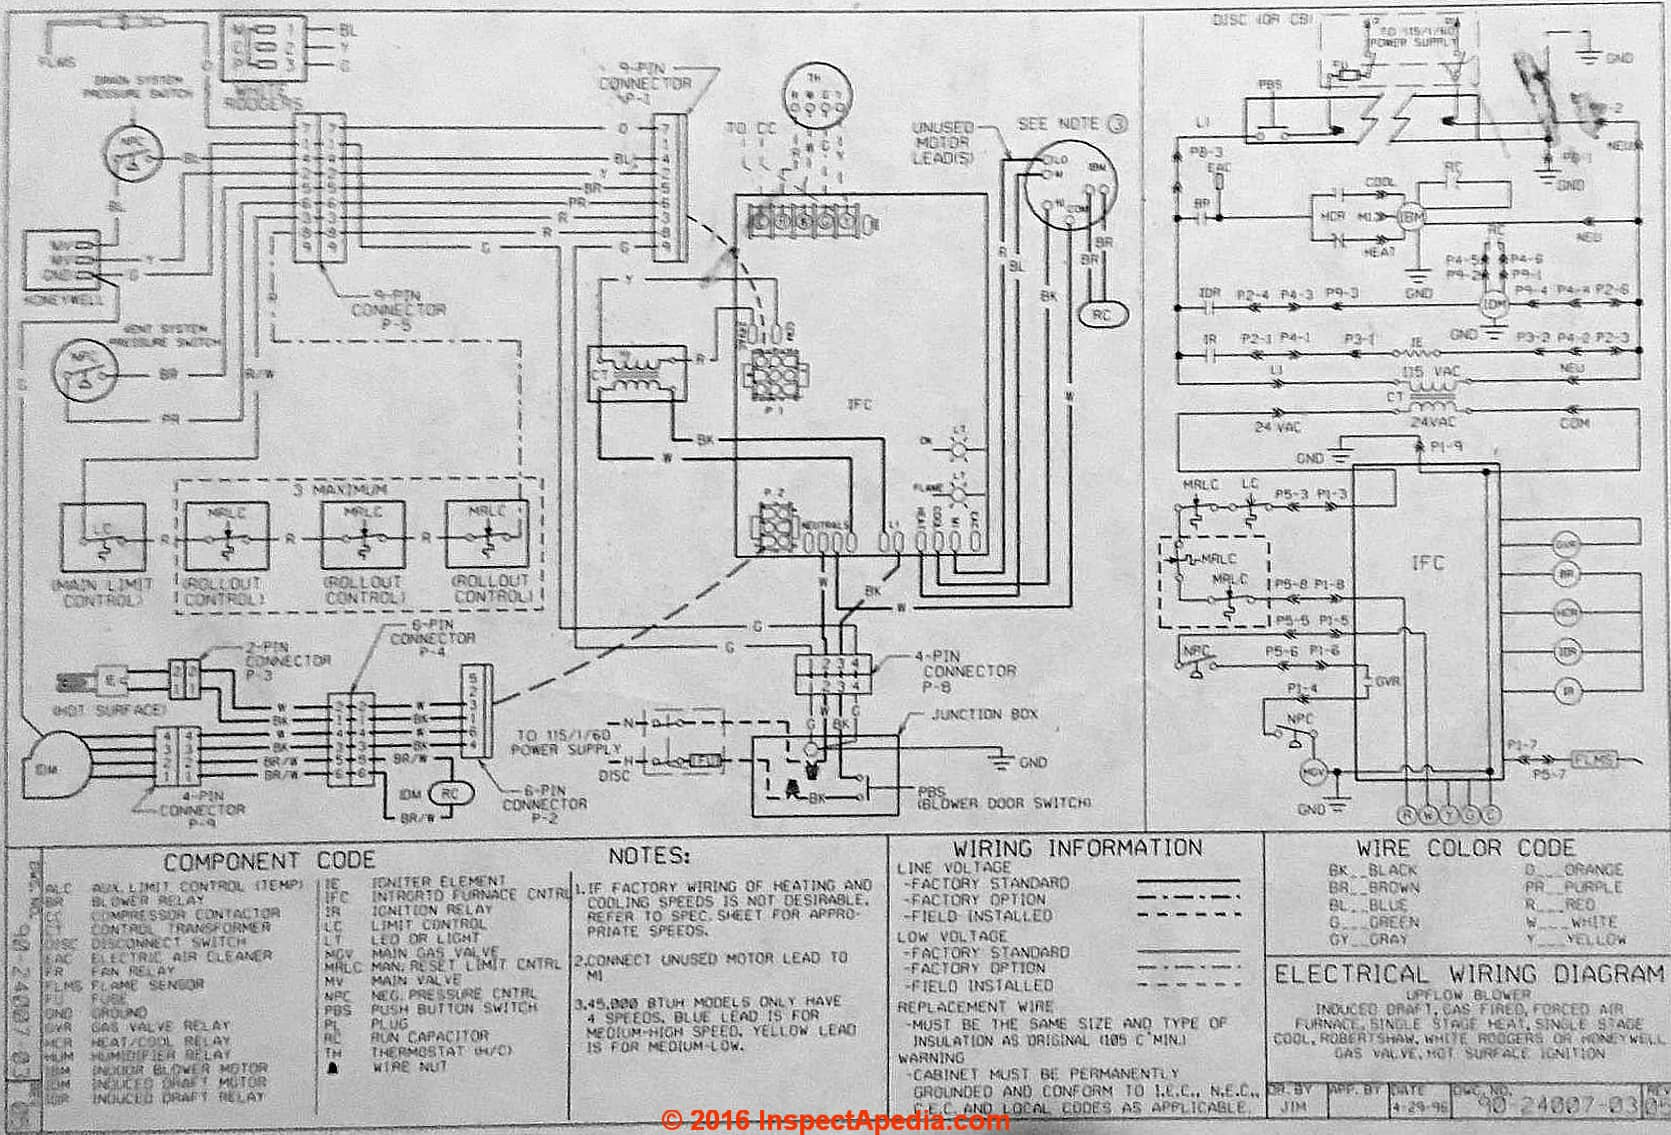 Heat Pump Condenser Fan Wiring Diagram Air Conditioner Faqs Rheem Ahu Typical At